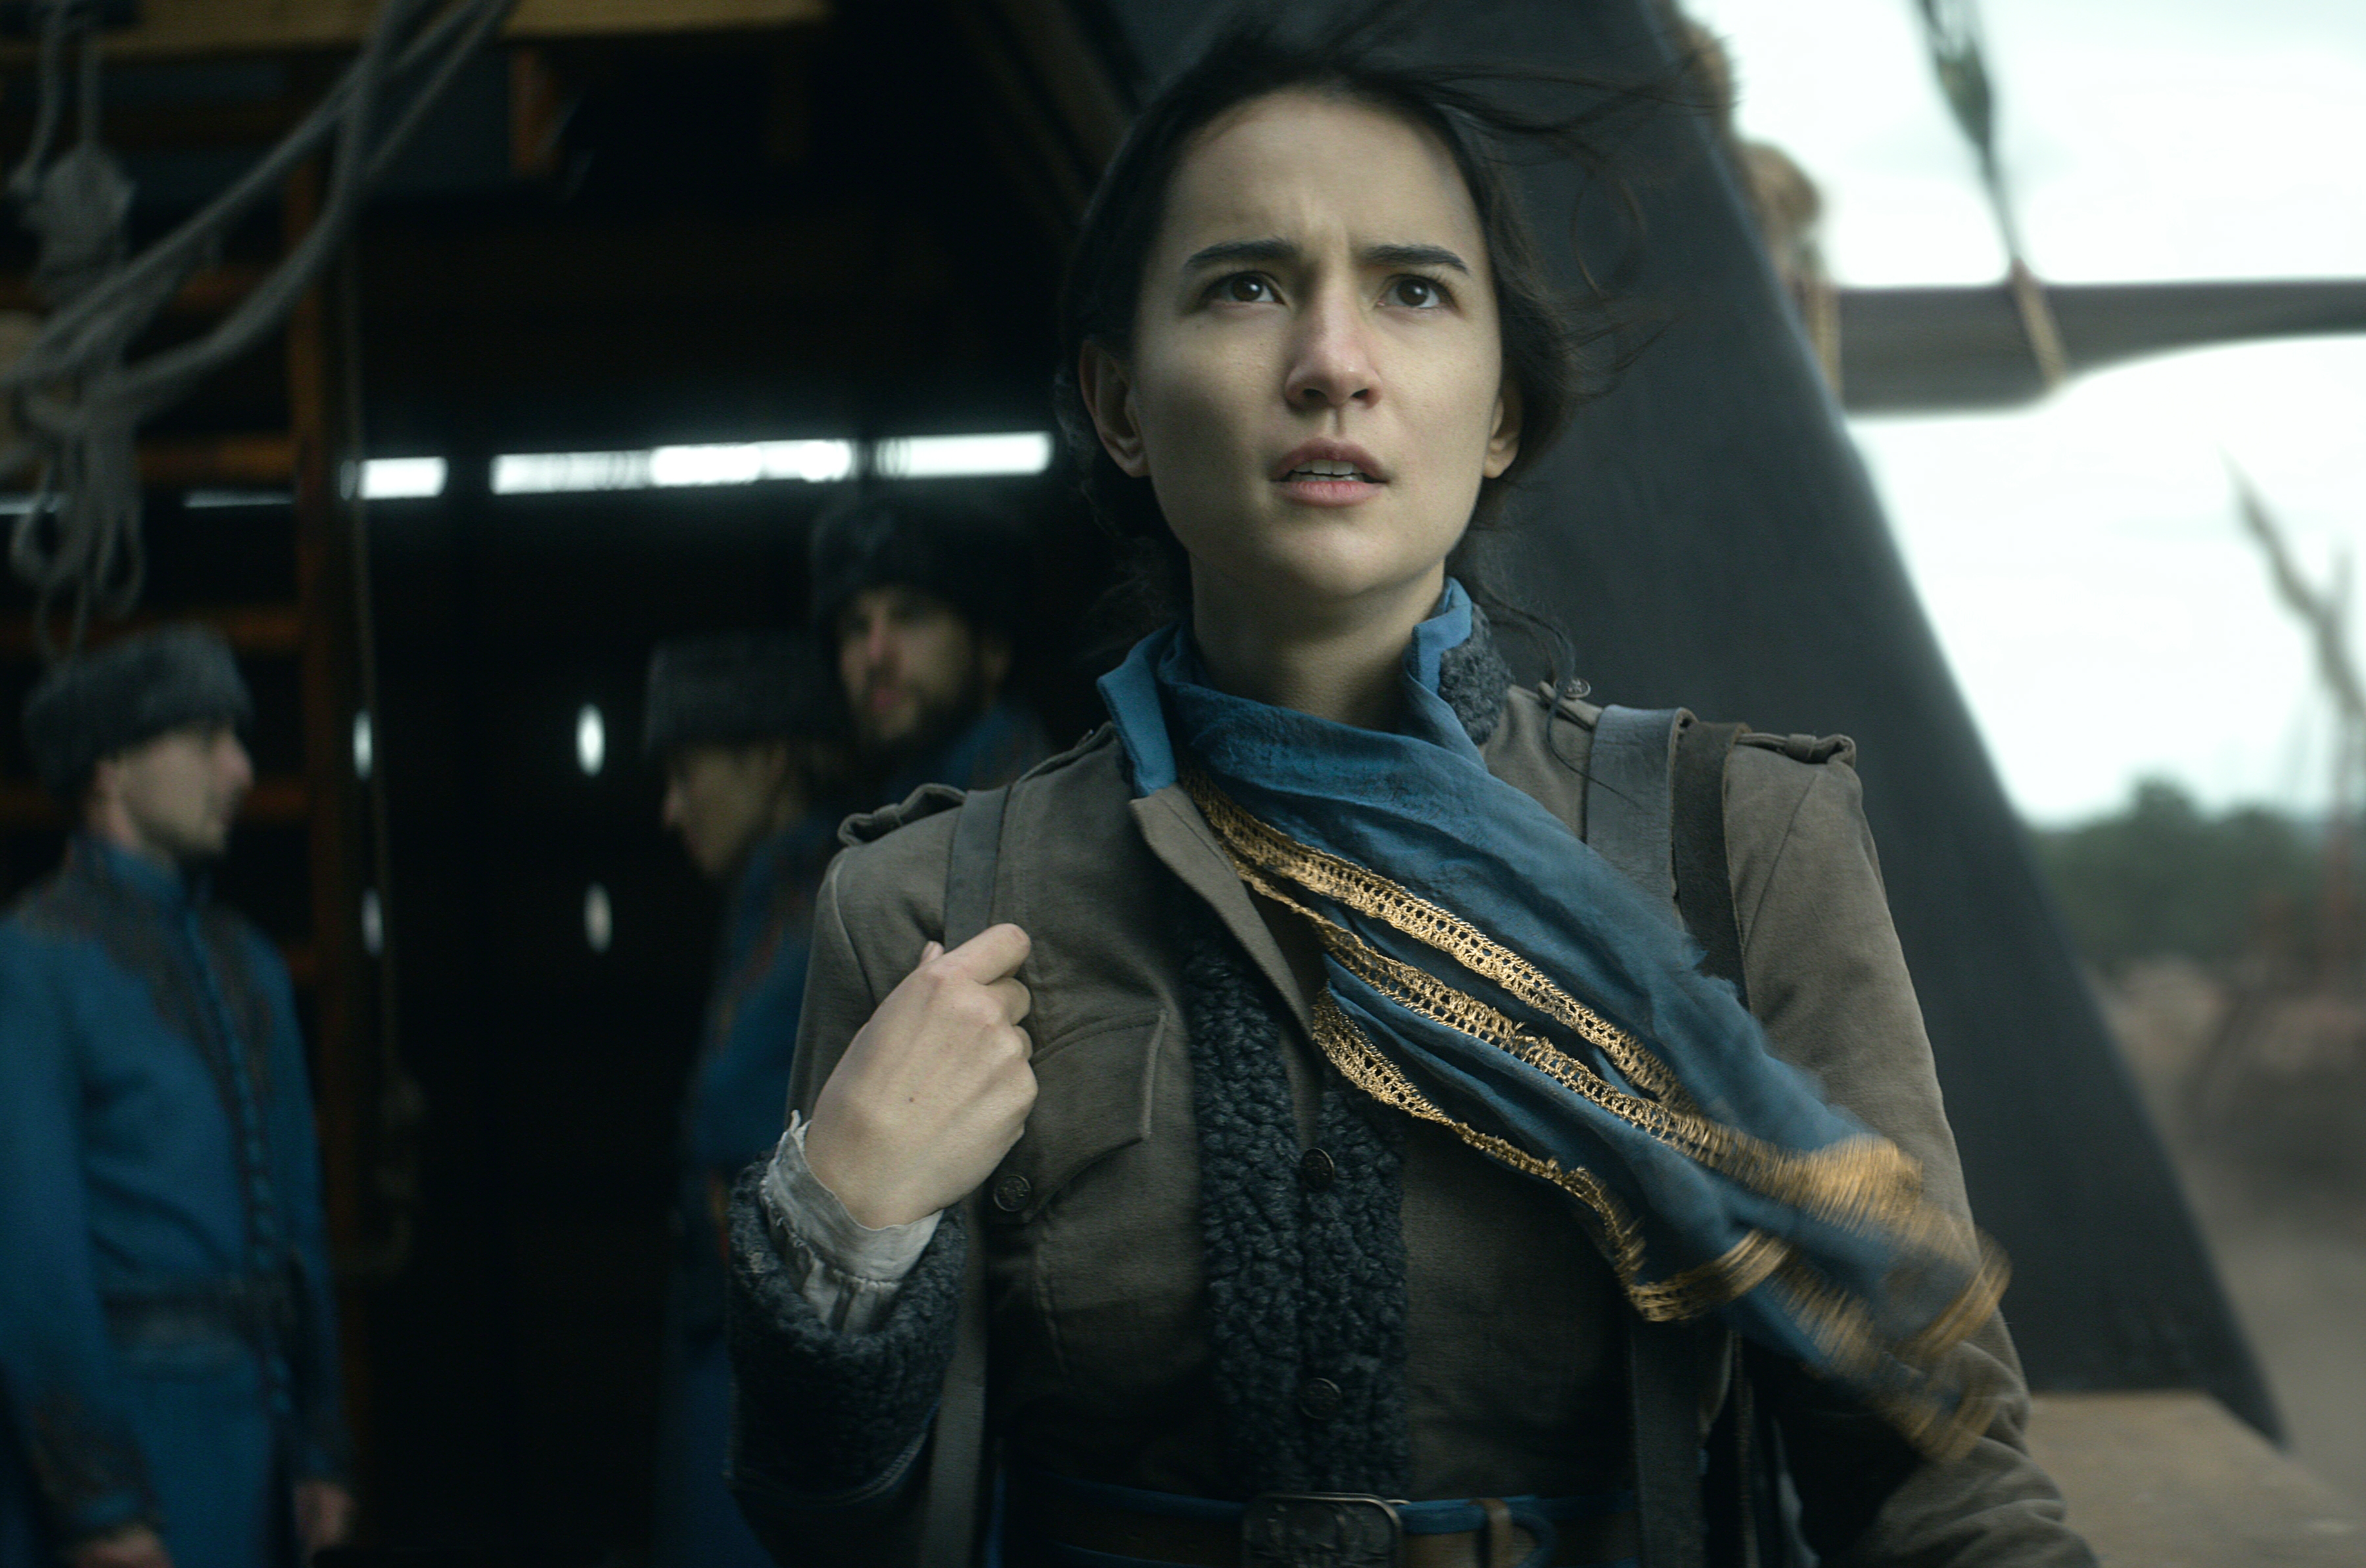 Netflix's first 'Shadow and Bone' trailer shows off the fantasy world of  Ravka | Engadget